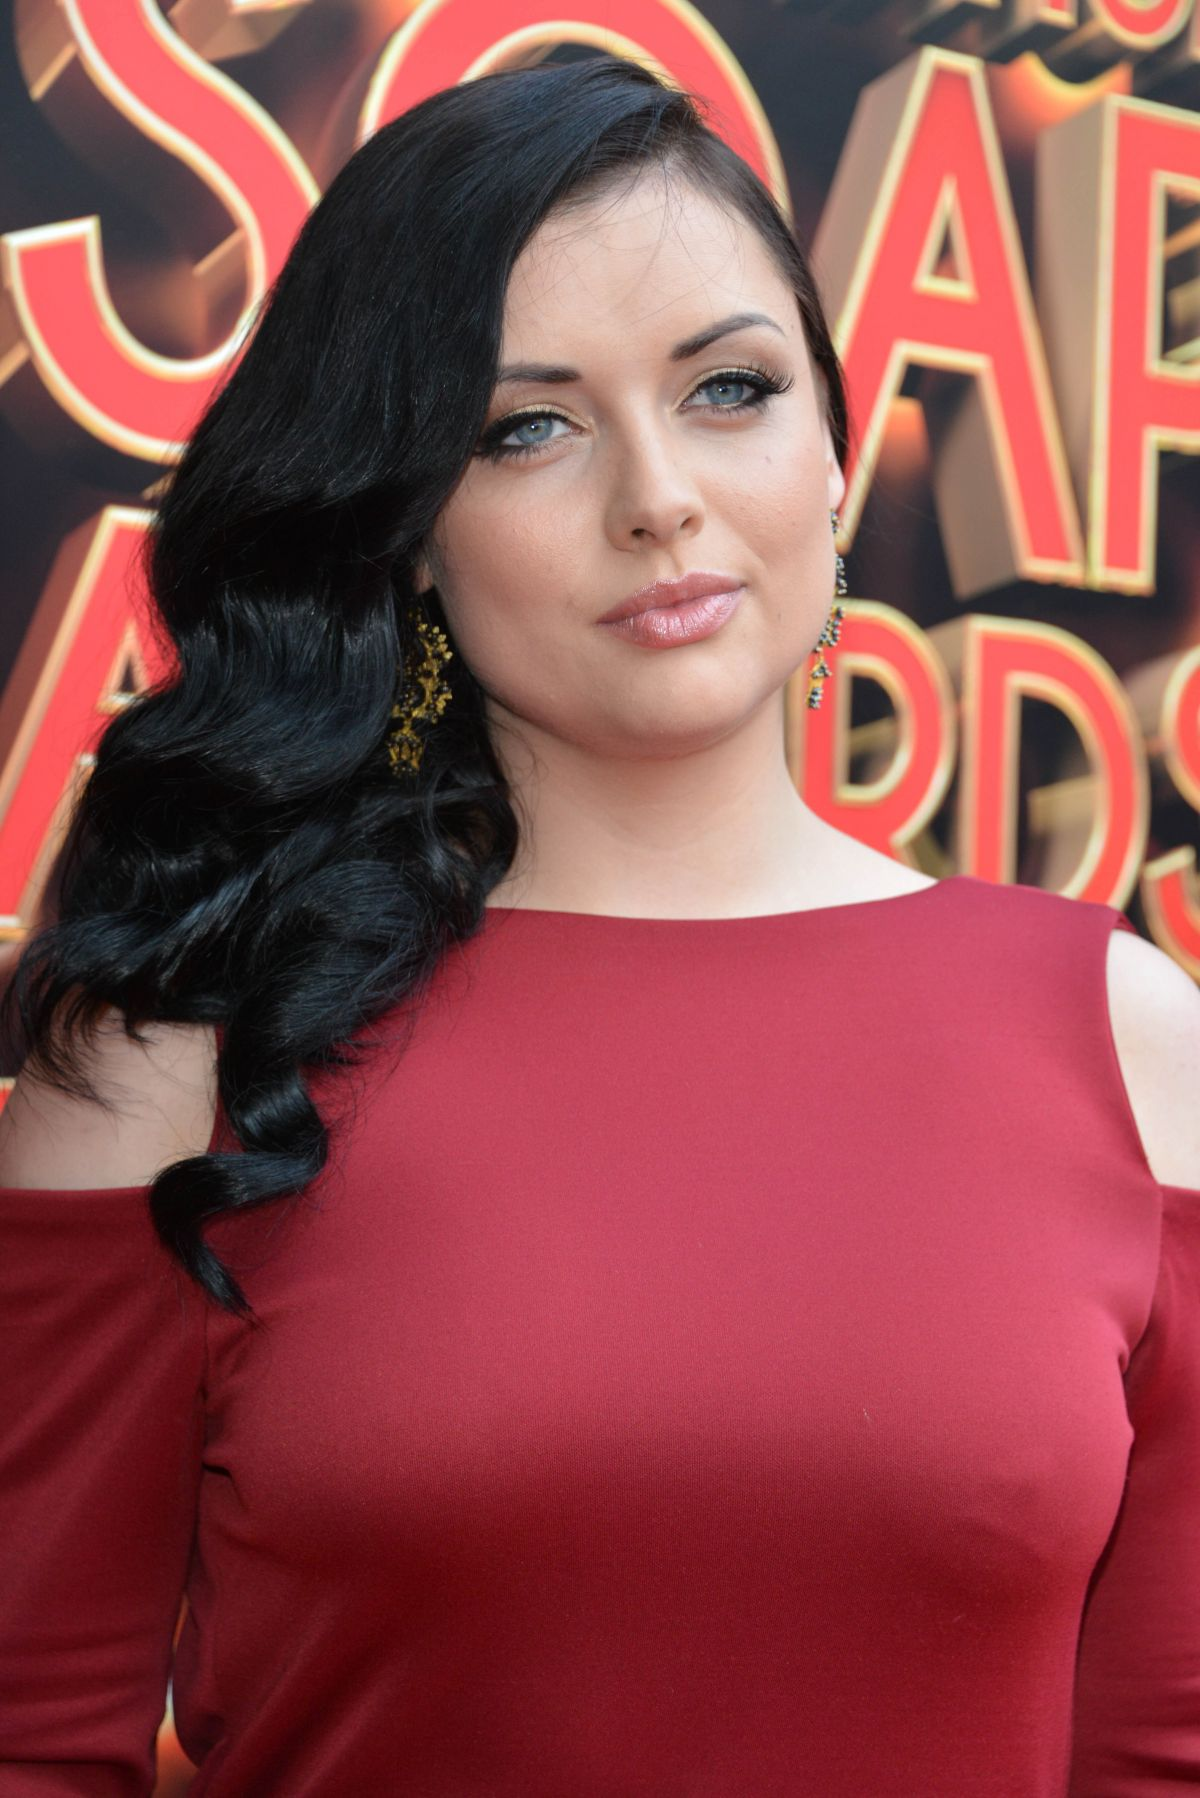 Instagram Shona Mcgarty naked (12 foto and video), Ass, Fappening, Selfie, braless 2017